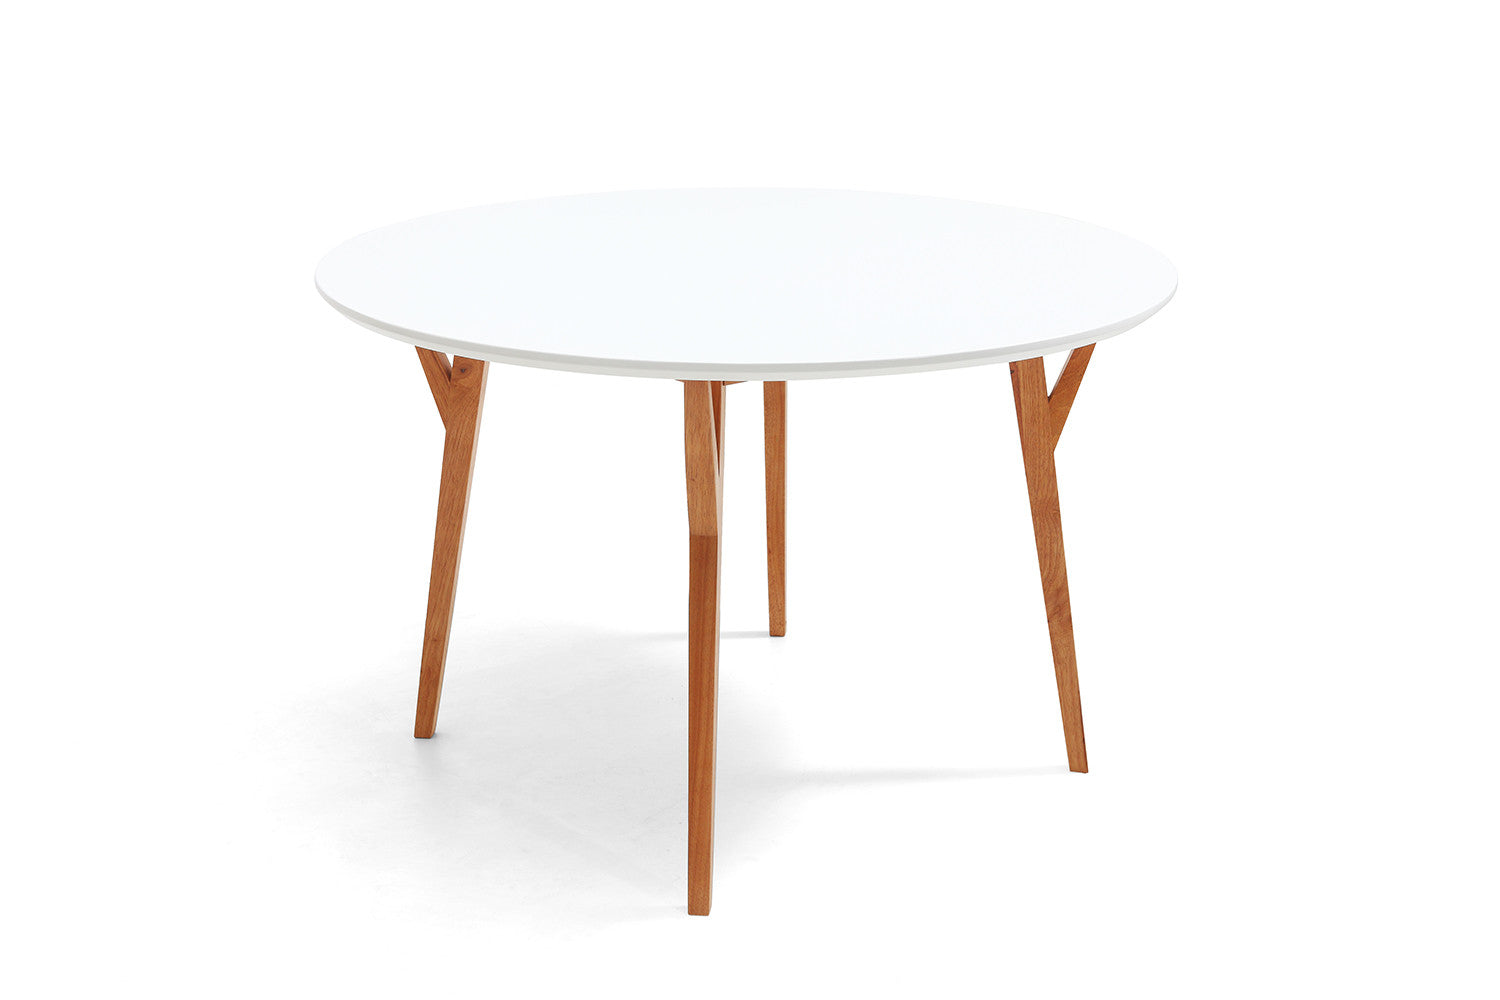 Table de salle manger ronde design scandinave moesa for Table a manger ronde